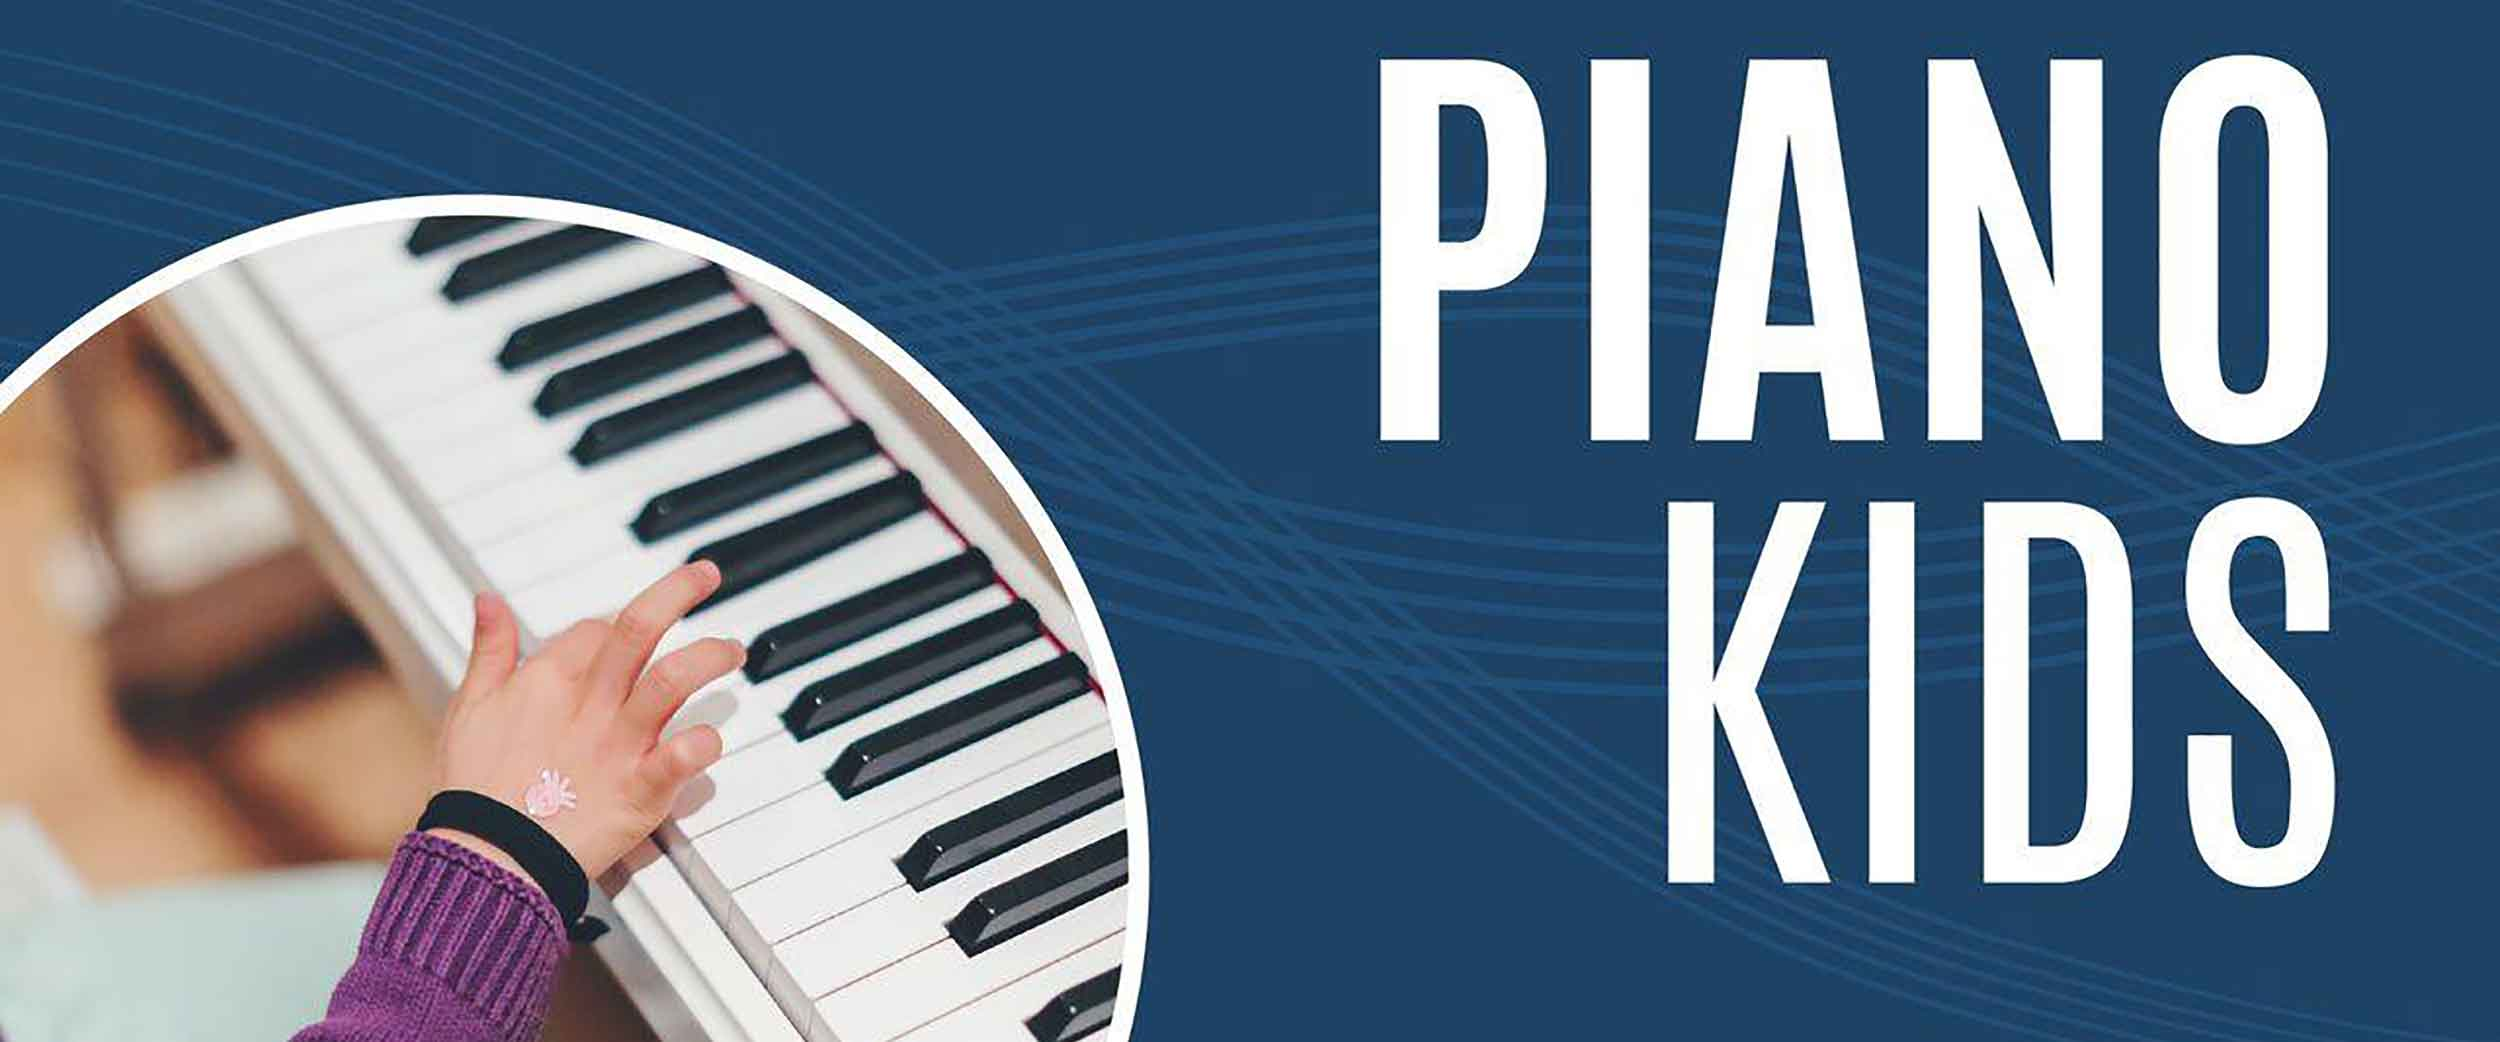 Piano Kids Banner Cms Jso Community Music School